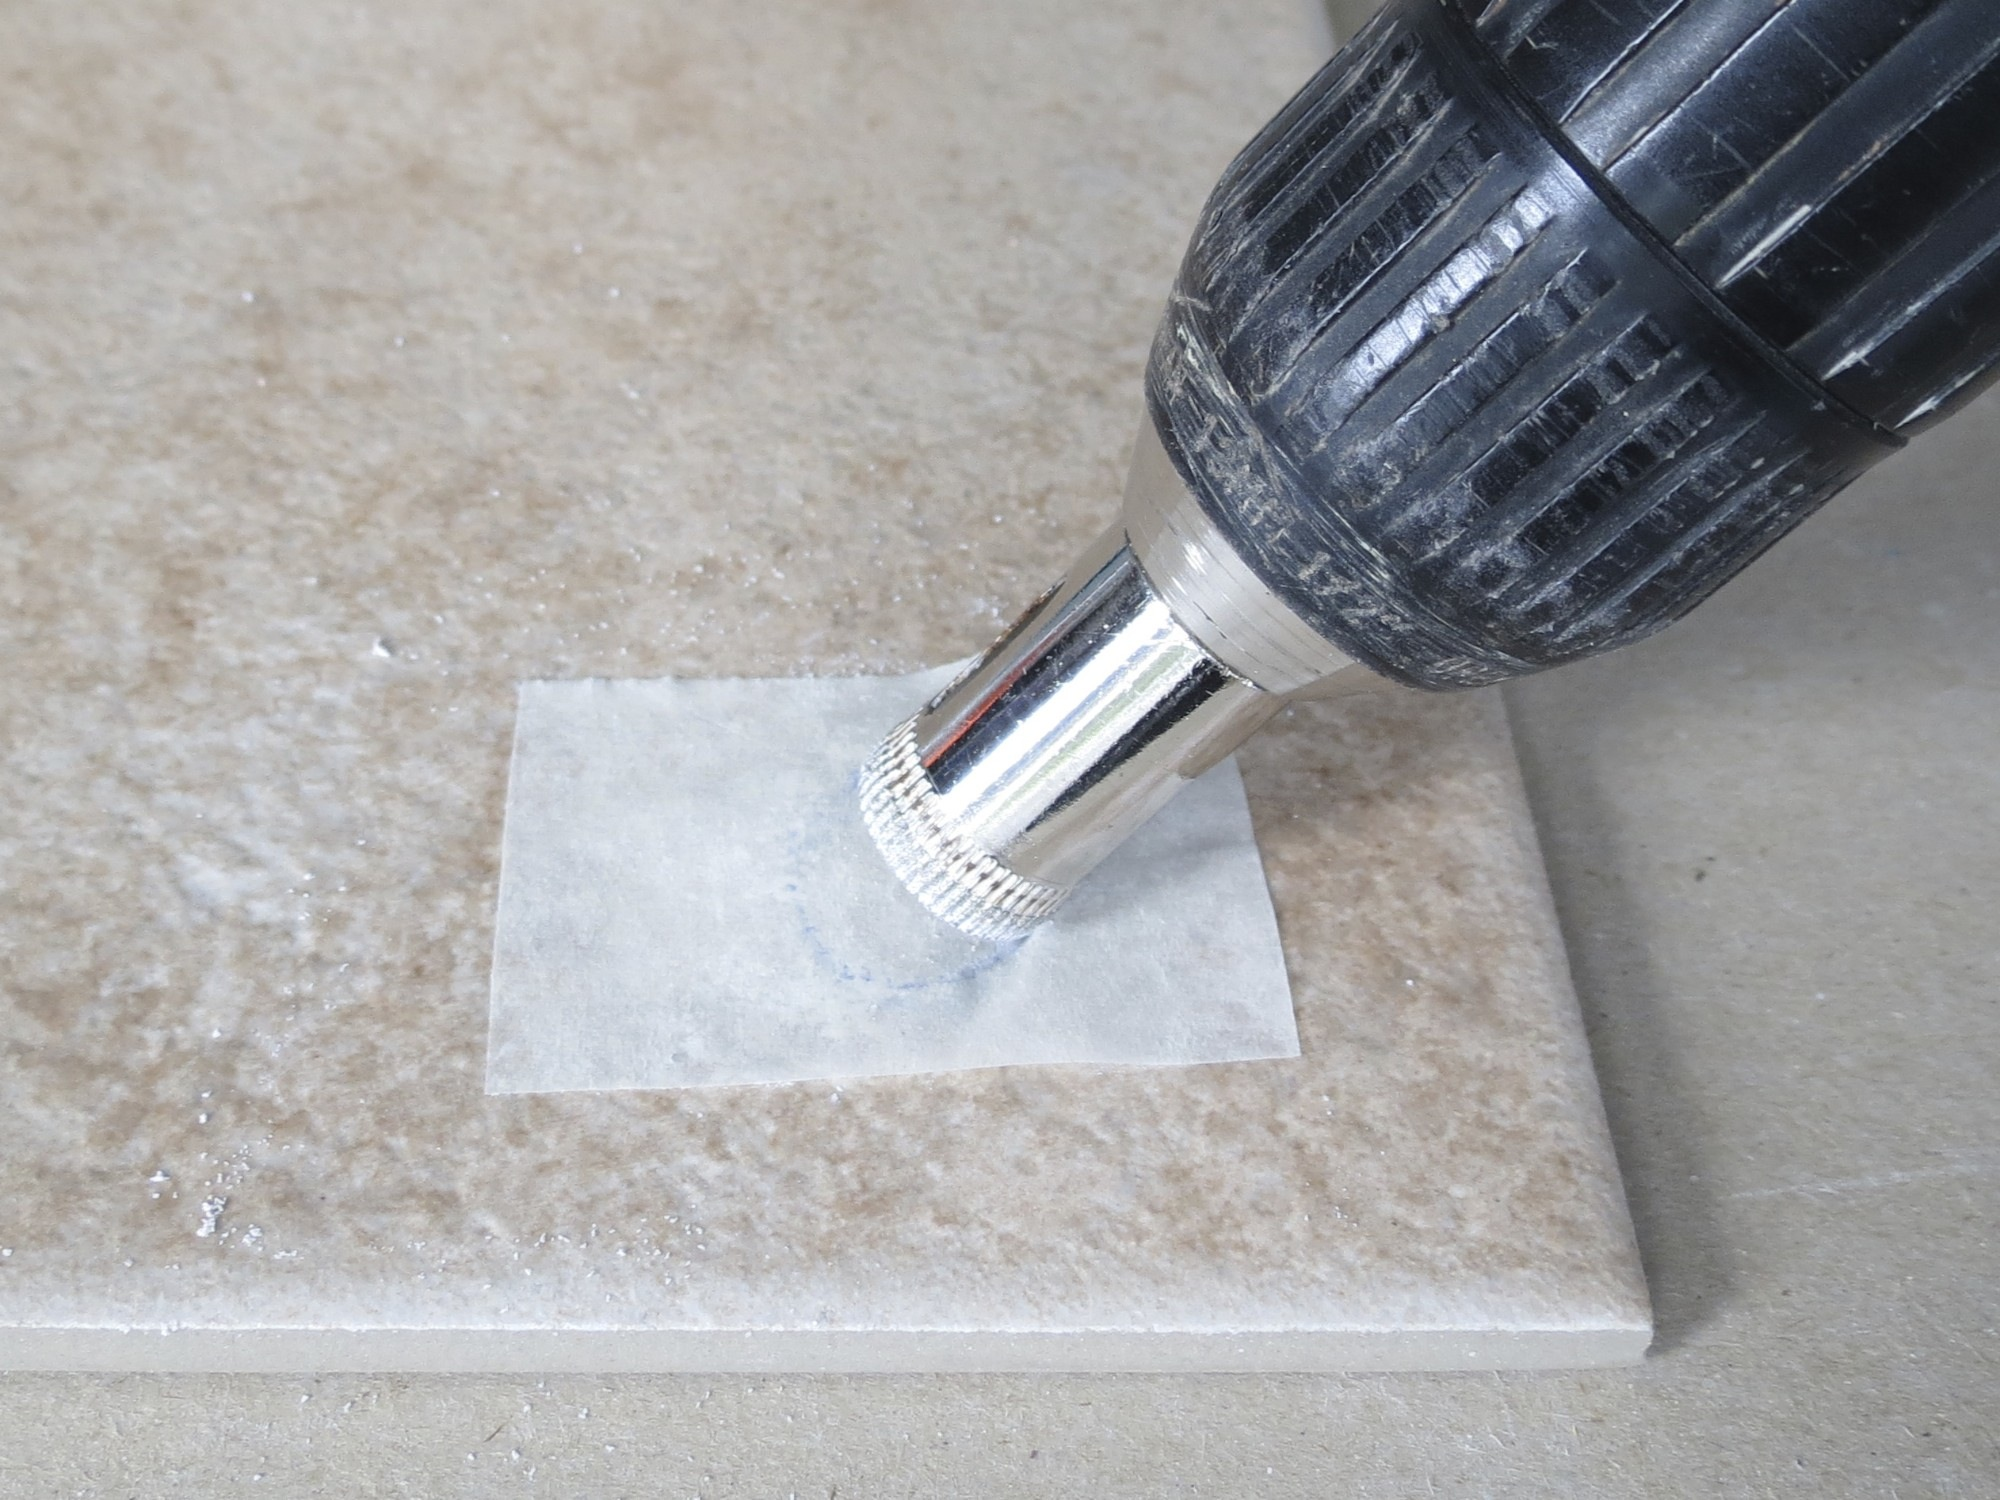 How To Drill Porcelain Tiles Tile Design Ideas